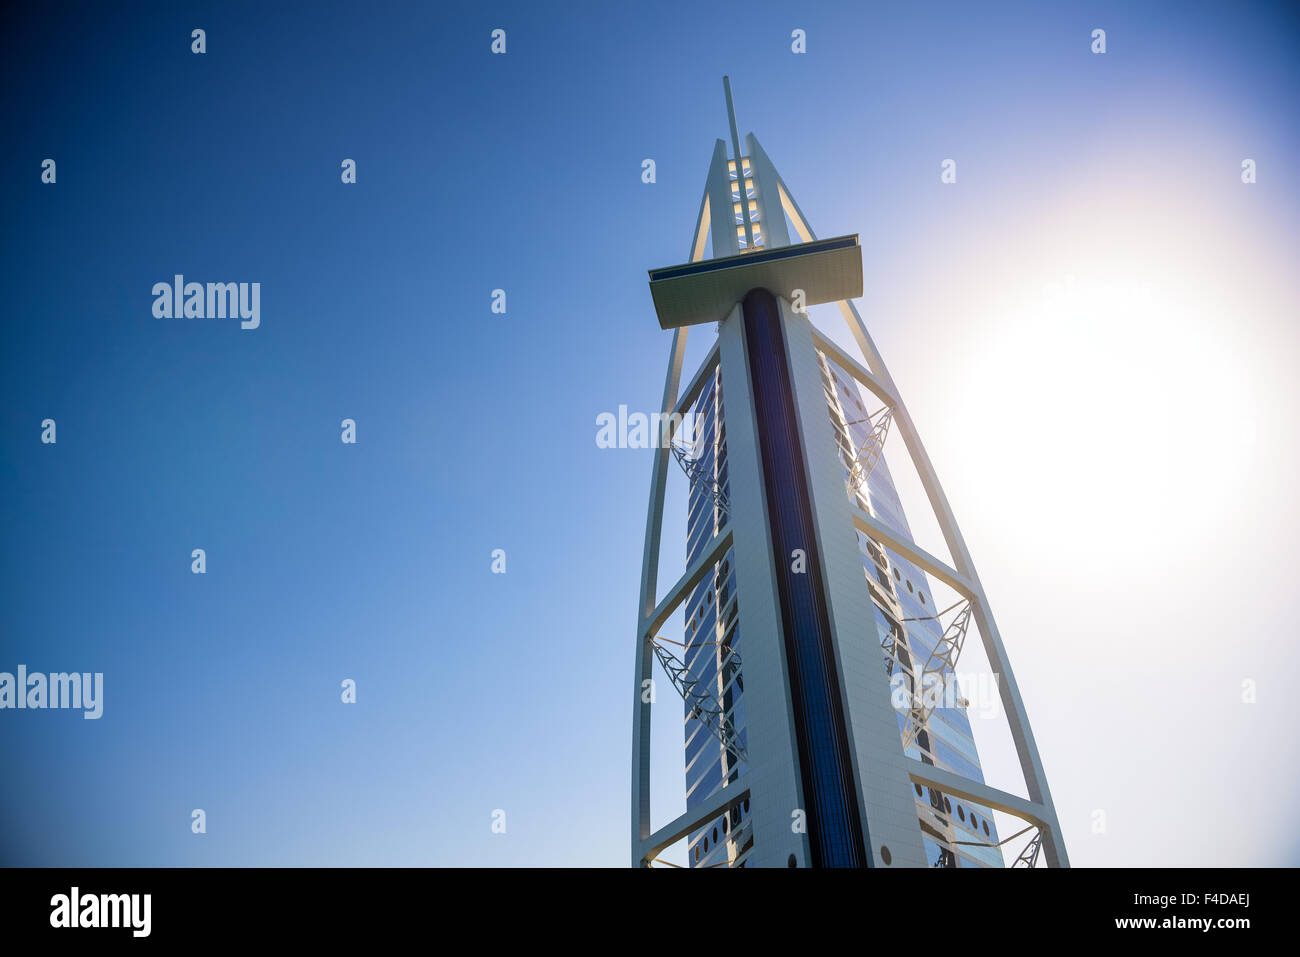 Hotel Burj Al Arab, Dubai, from an extreme angle taken from the water. - Stock Image